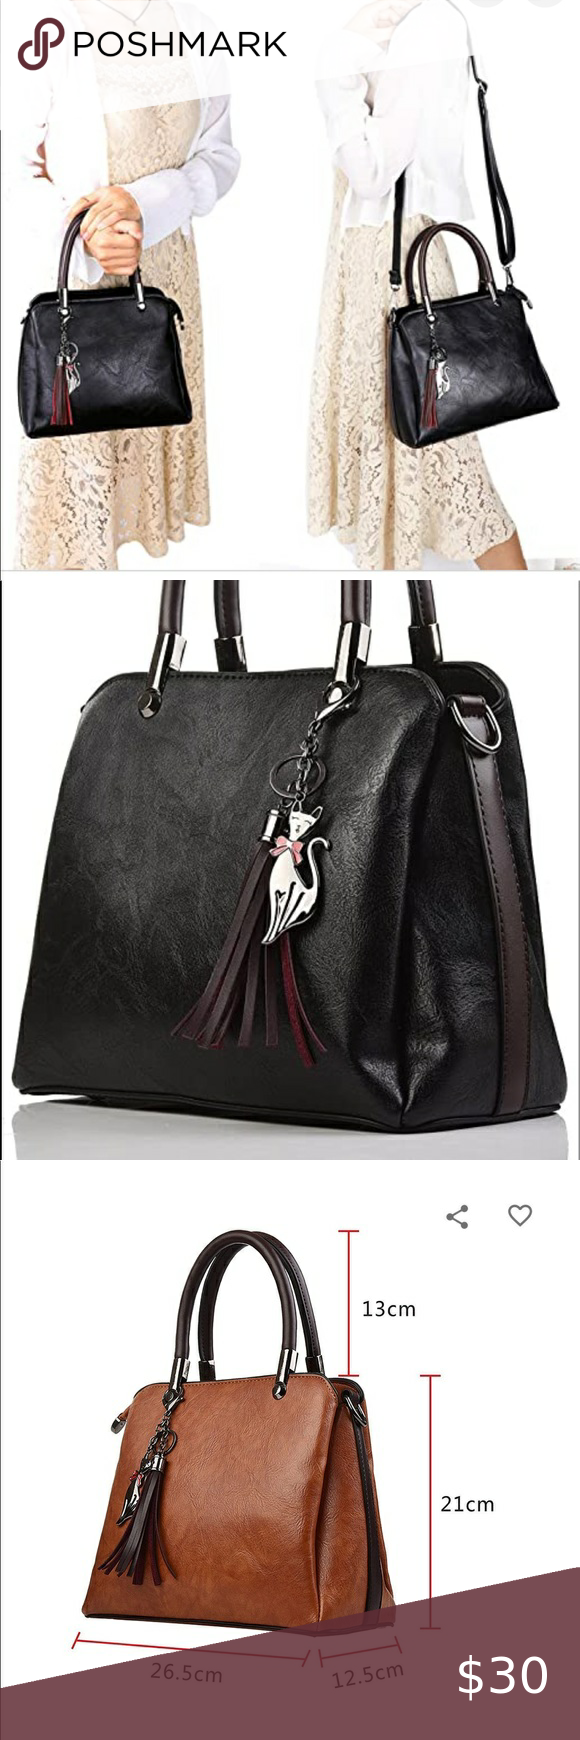 Caphill Pu Leather Shoulder Crossbody Tote Handbag Crossbody Tote Black Handbag Tote White Gucci Bag